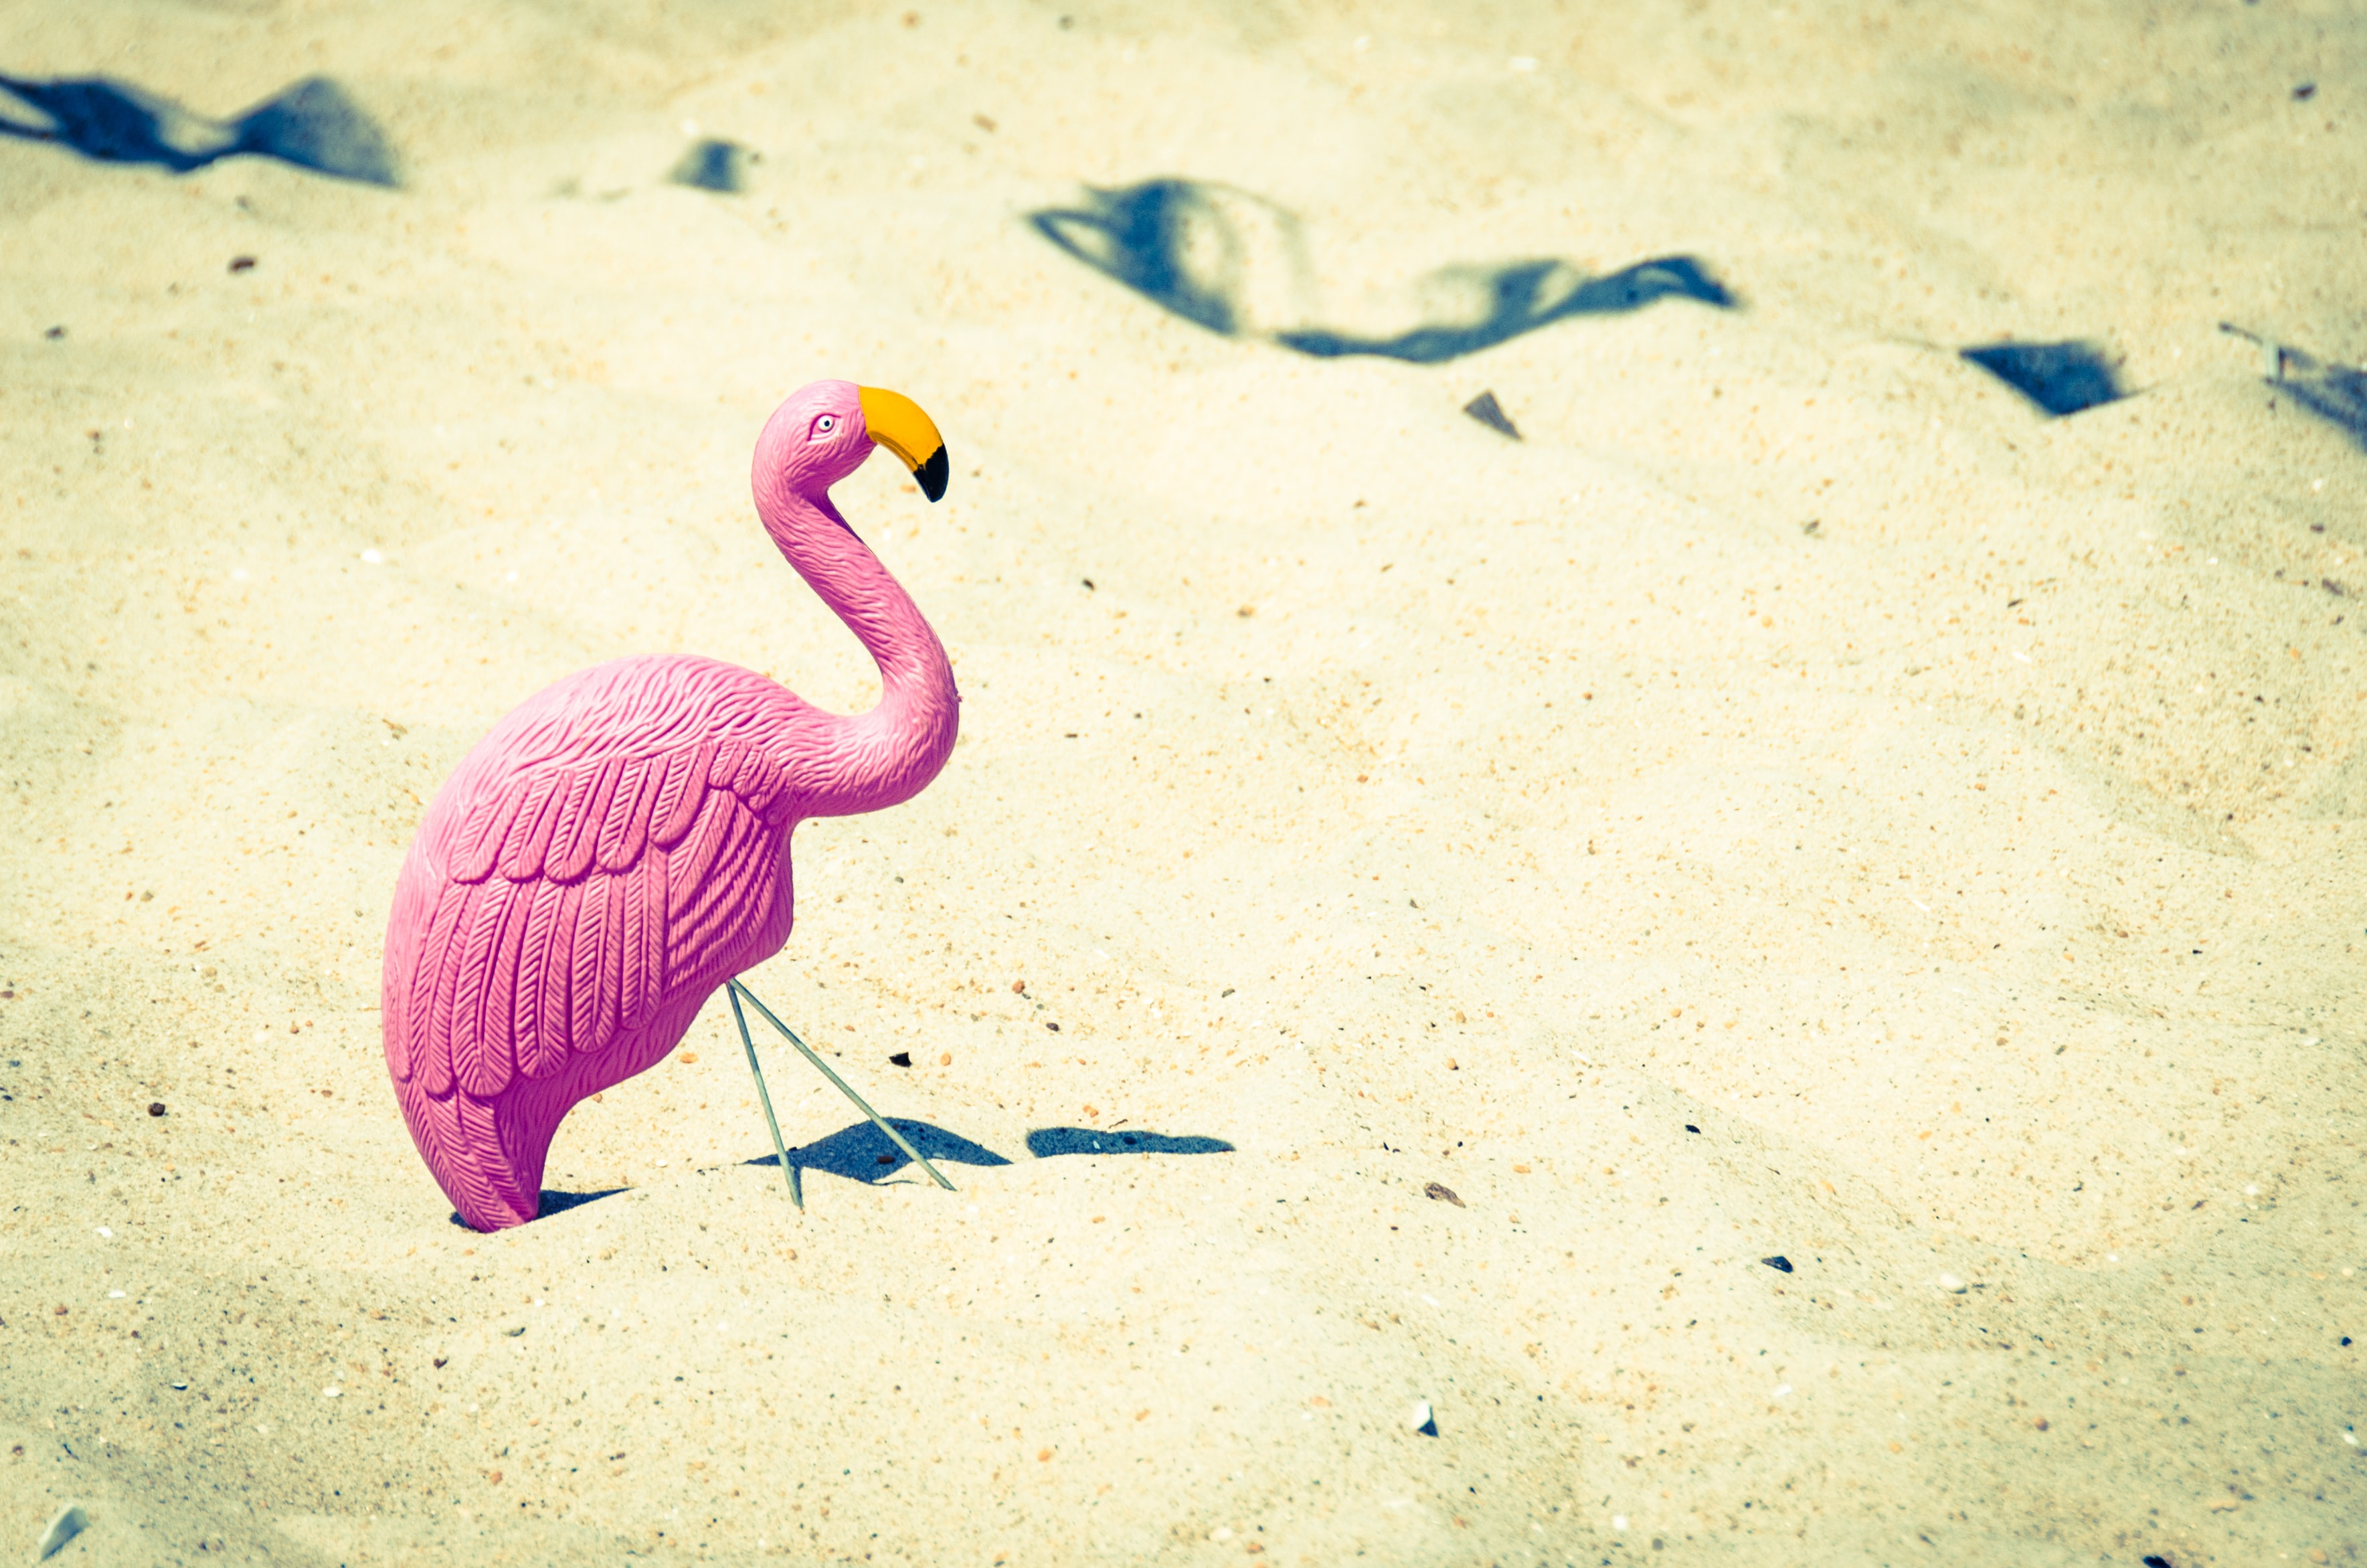 pink plastic flamingo toy standing on white sand during daytime